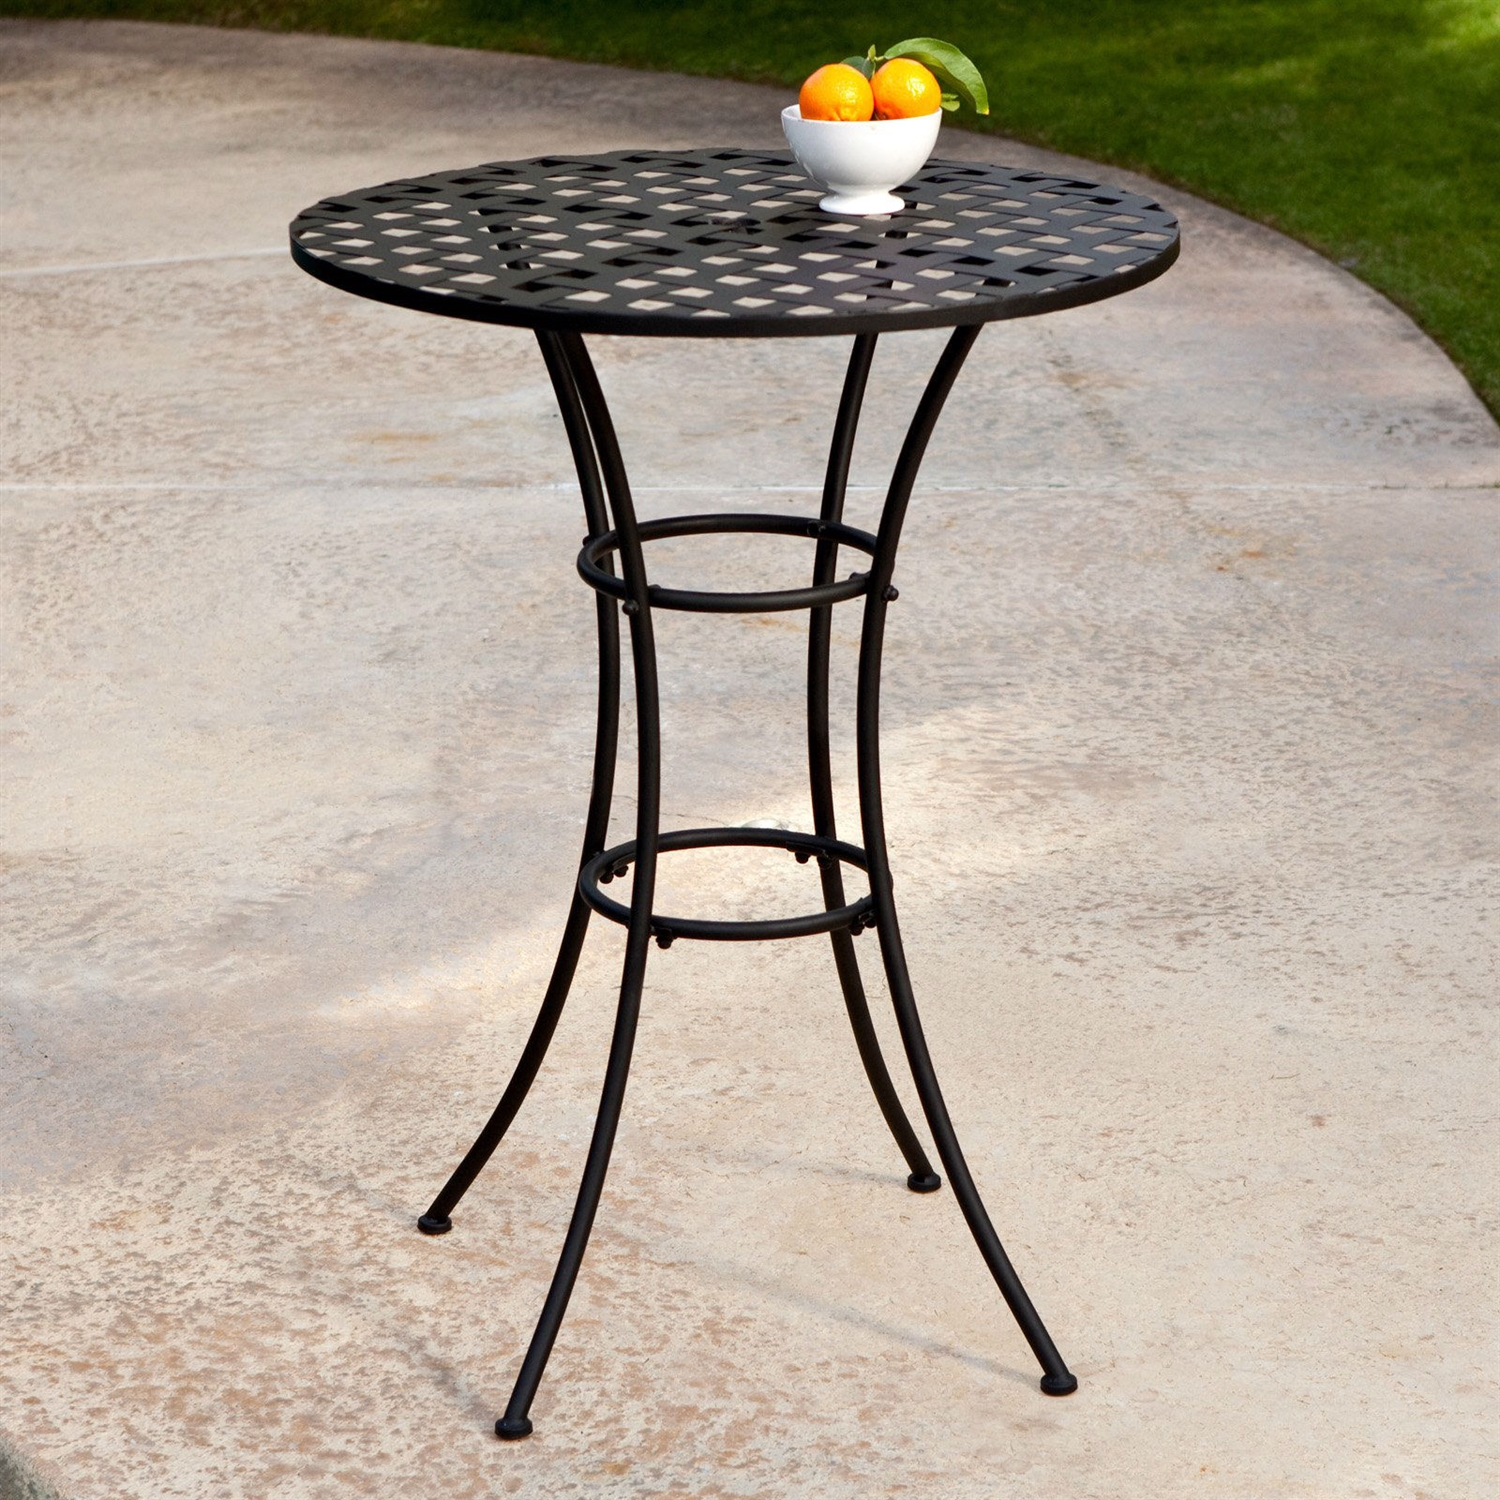 Black wrought iron outdoor bistro patio table with timeless round tabletop fastfurnishings com